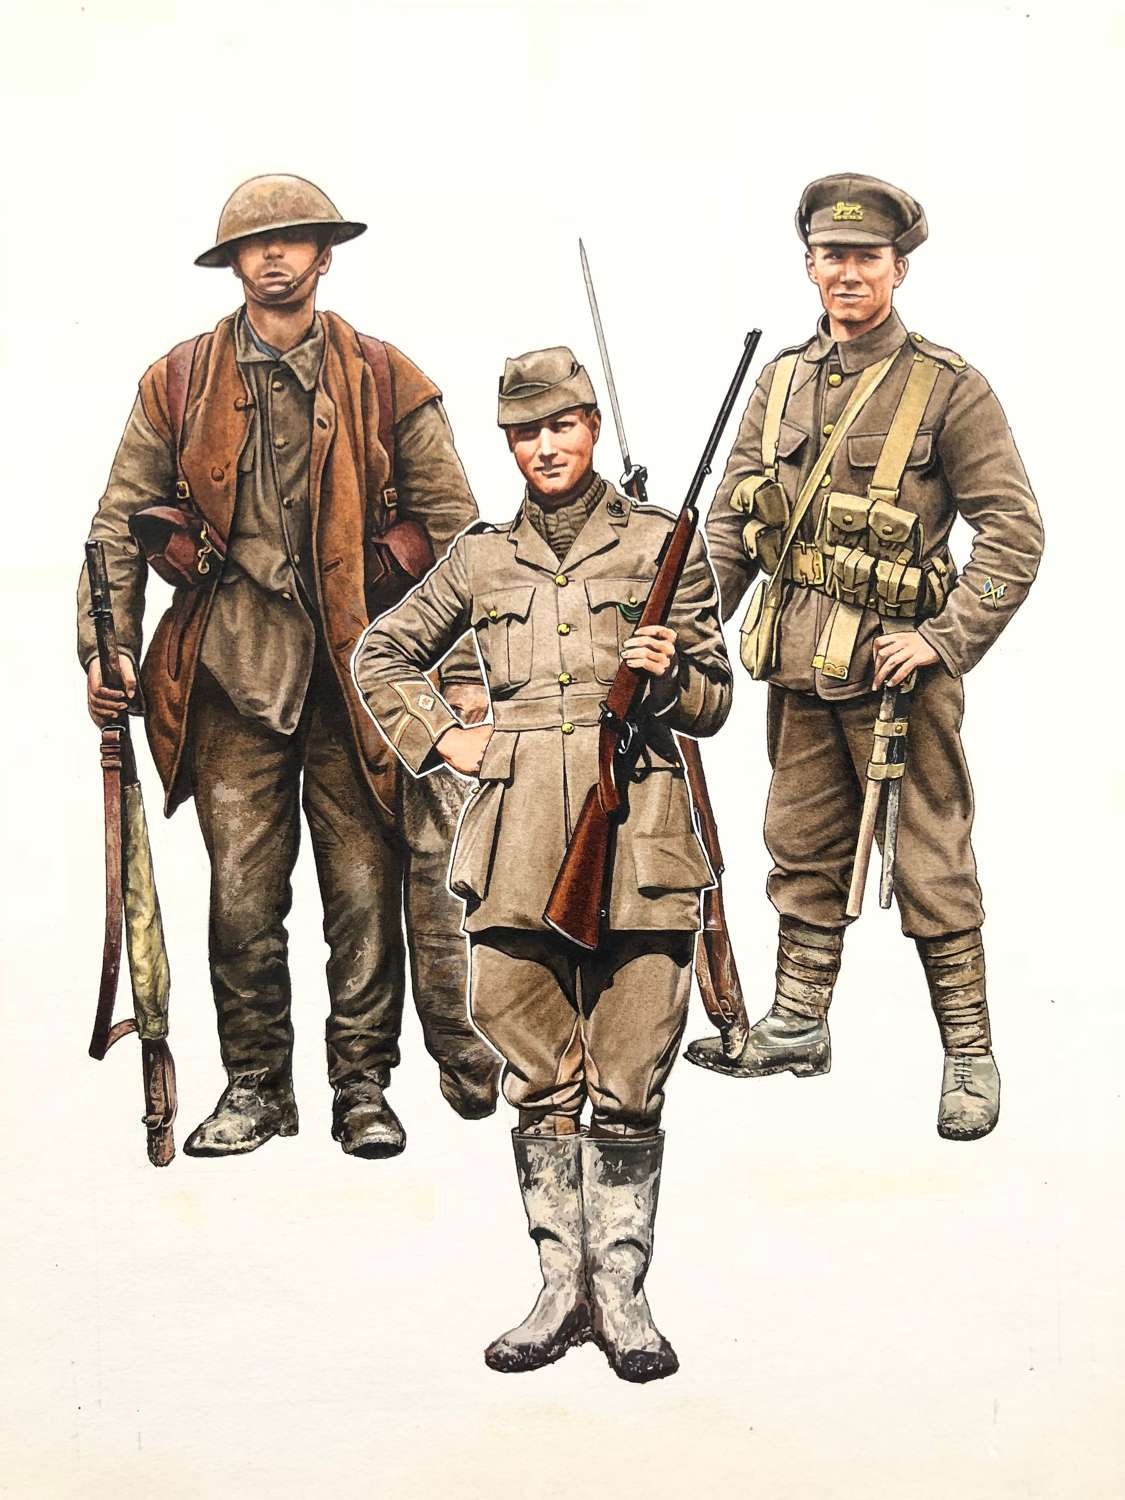 WW1 Original British Army Pierre Turner  Illustration Blandford Book